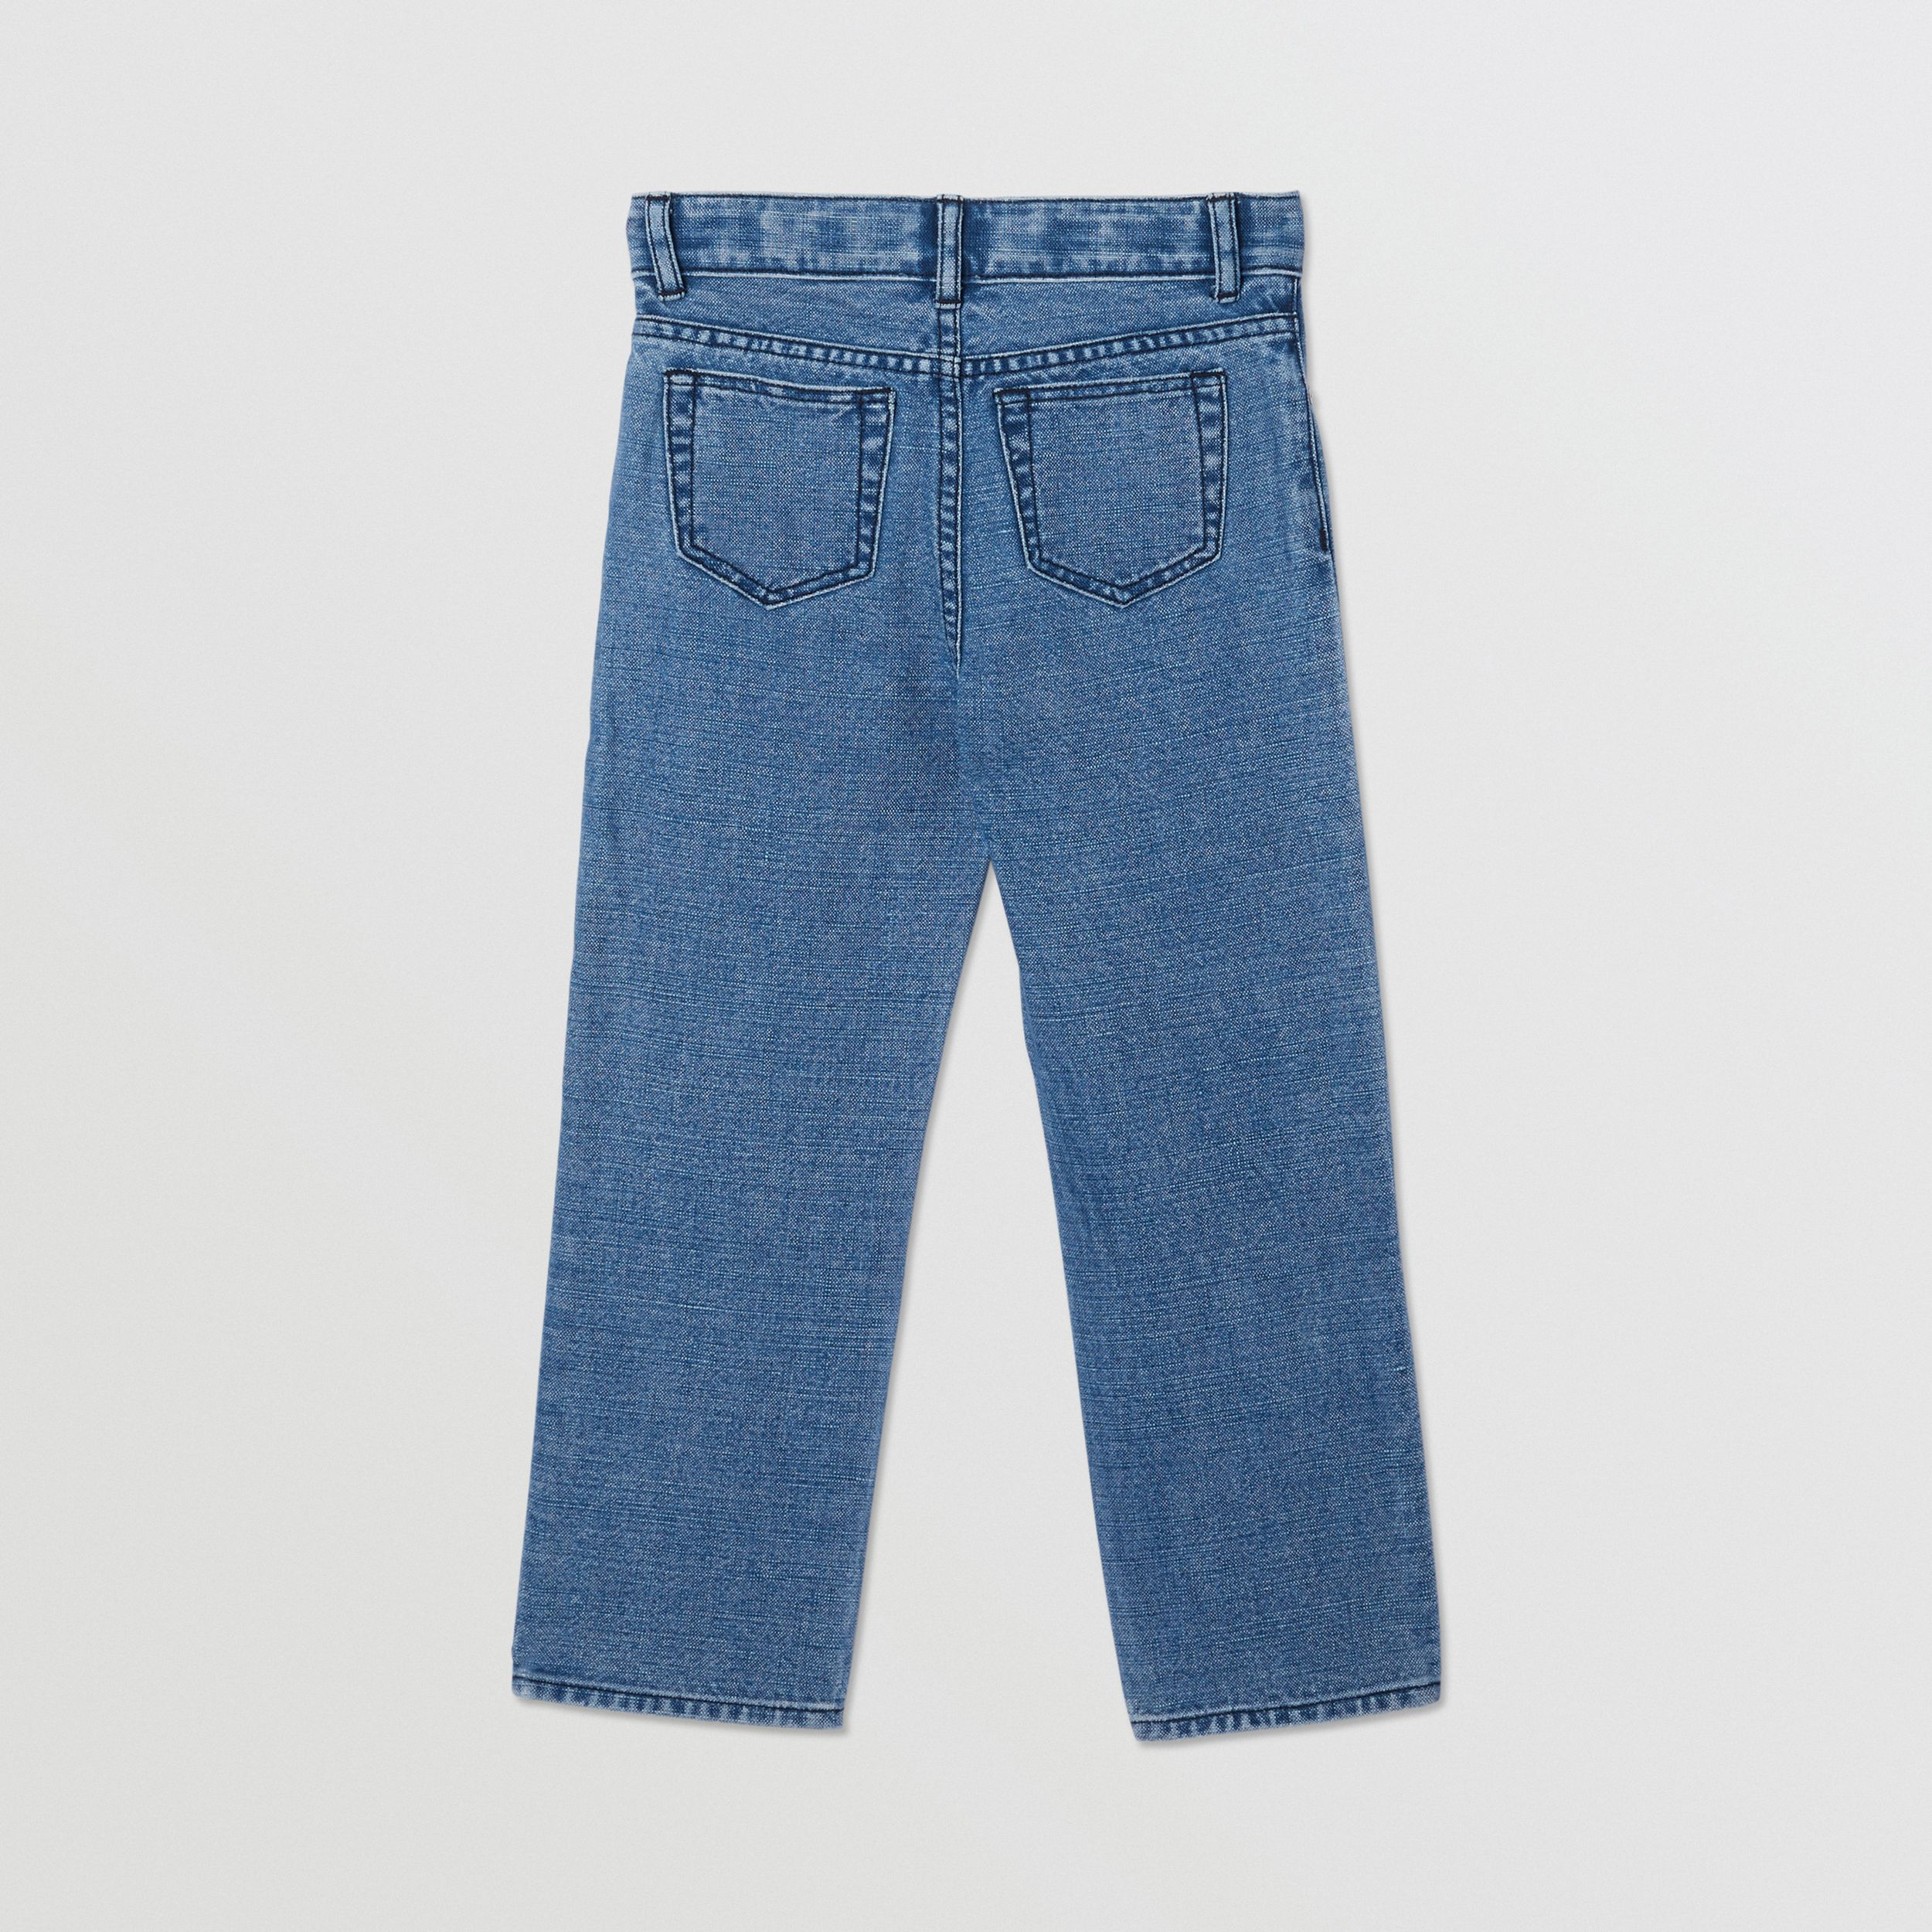 Logo Print Japanese Denim Jeans in Indigo | Burberry - 4